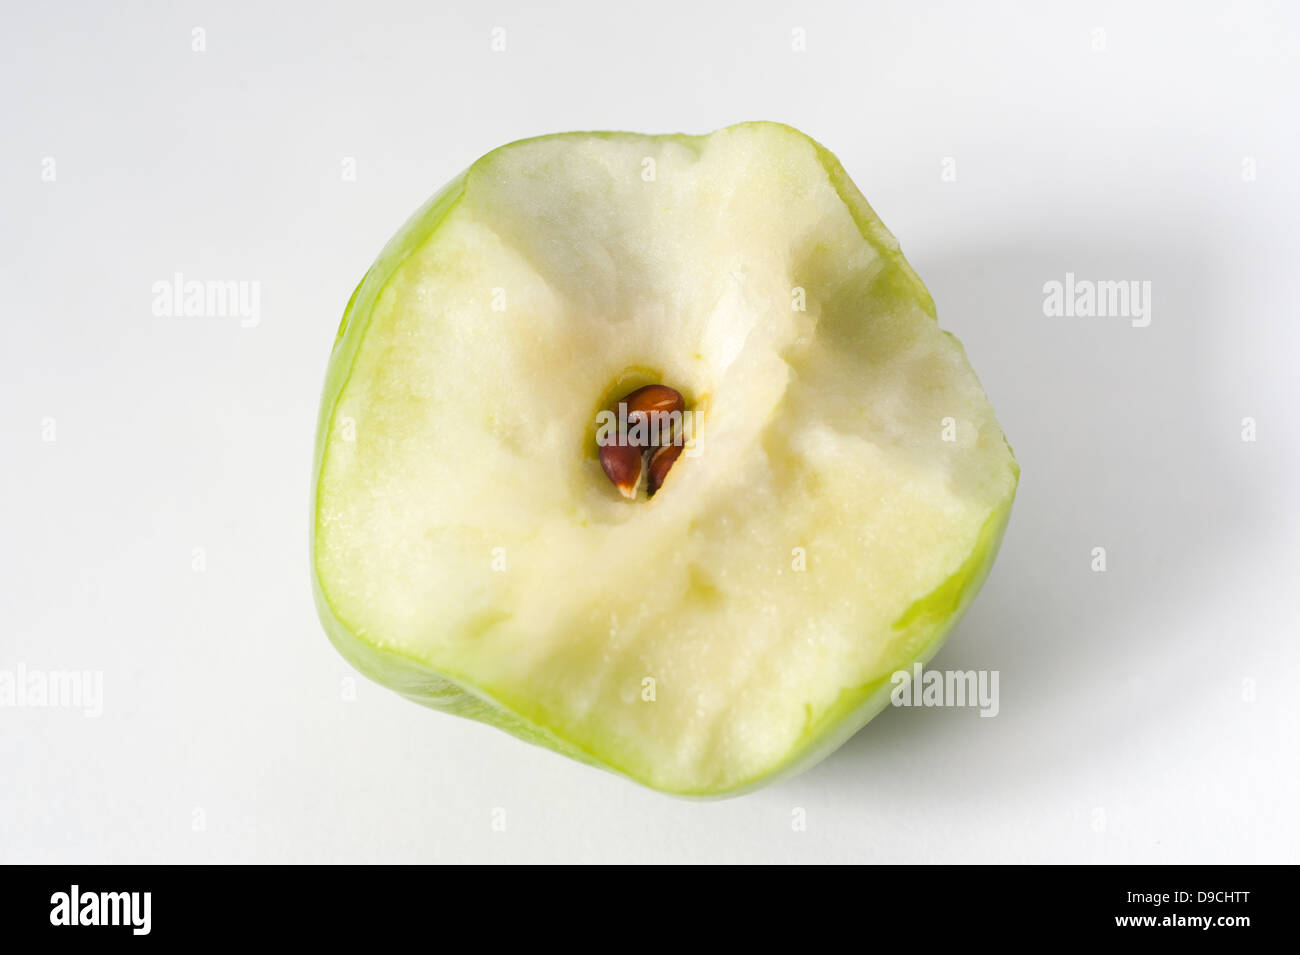 A half eaten green apple showing the core and seeds - Stock Image